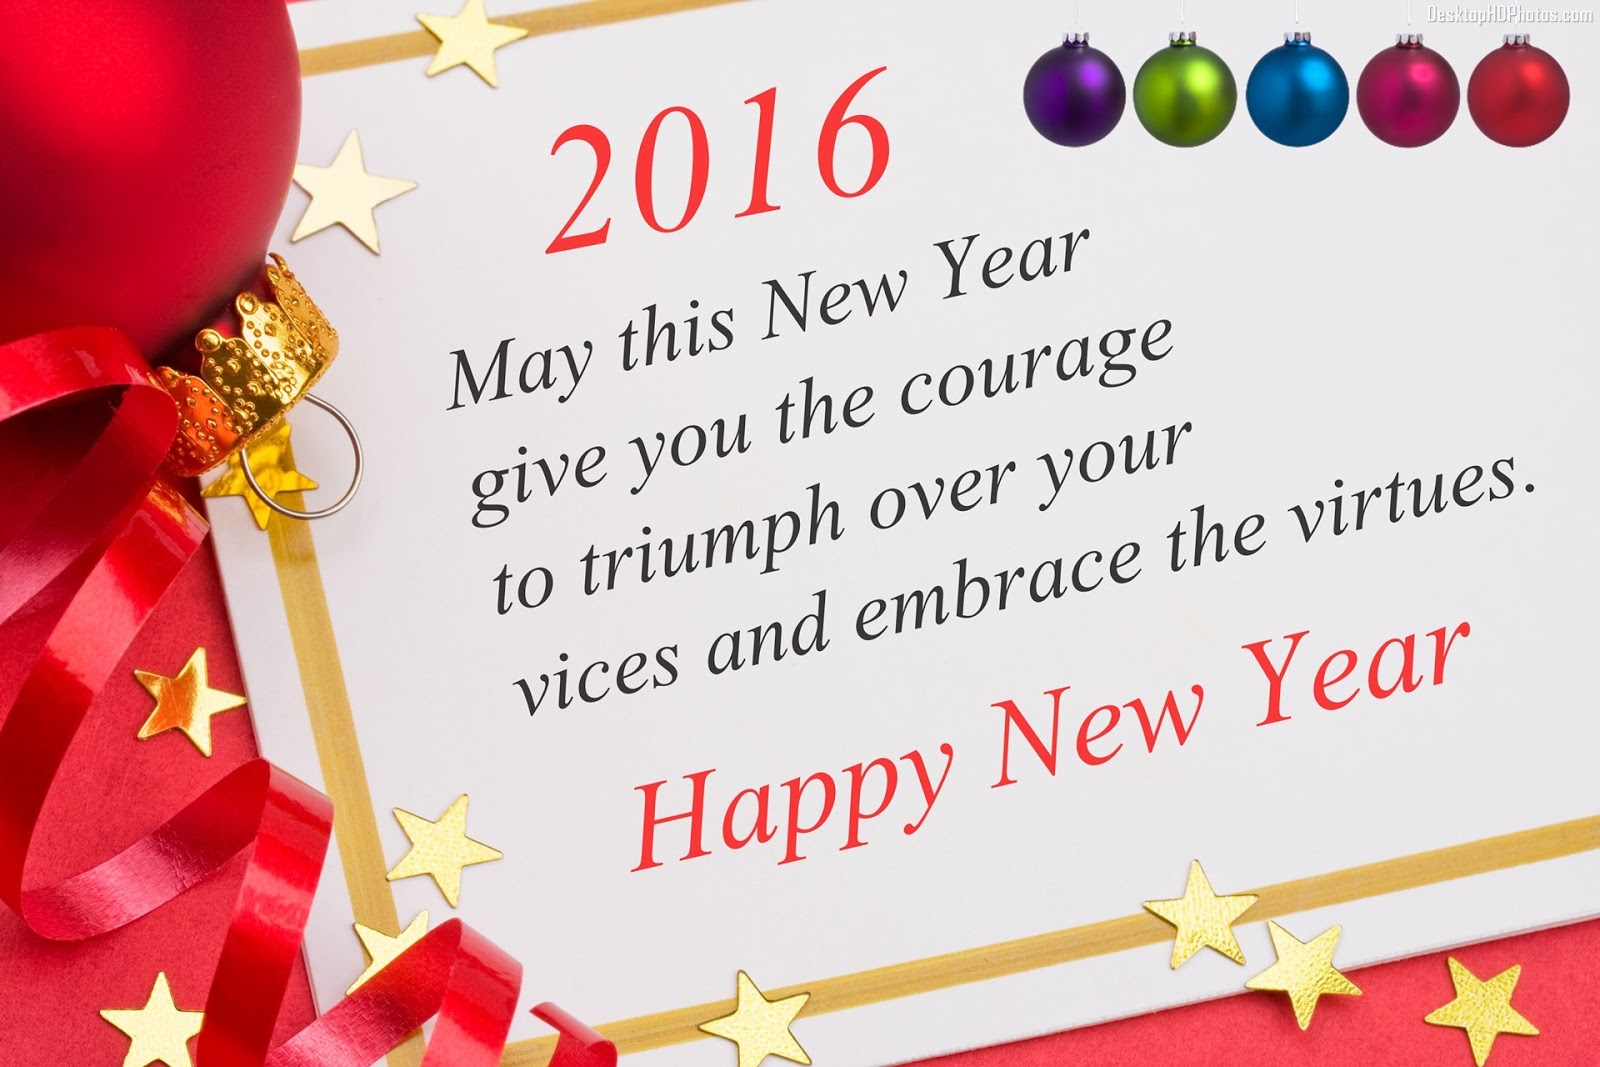 Happy New Year Quotes 2016 In English | Happy New Year 2017